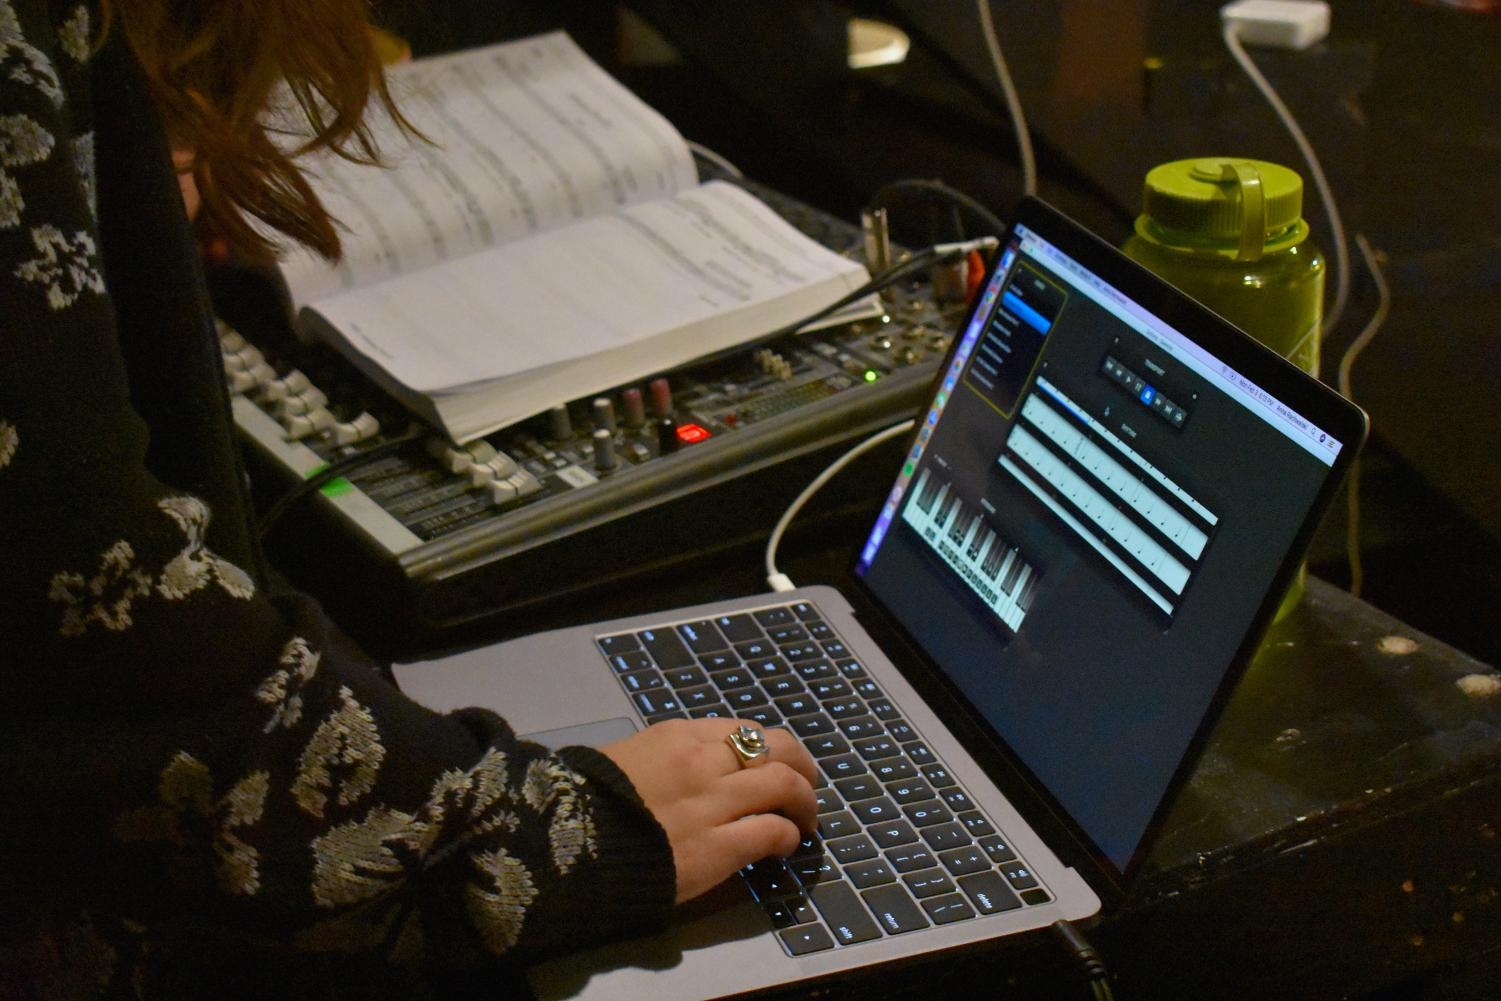 Sophomore+Anna+Rackwalski+operates+a+software+called+Sinfonia%2C+which+performs+live+orchestra+via+users+tapping+the+tempo.